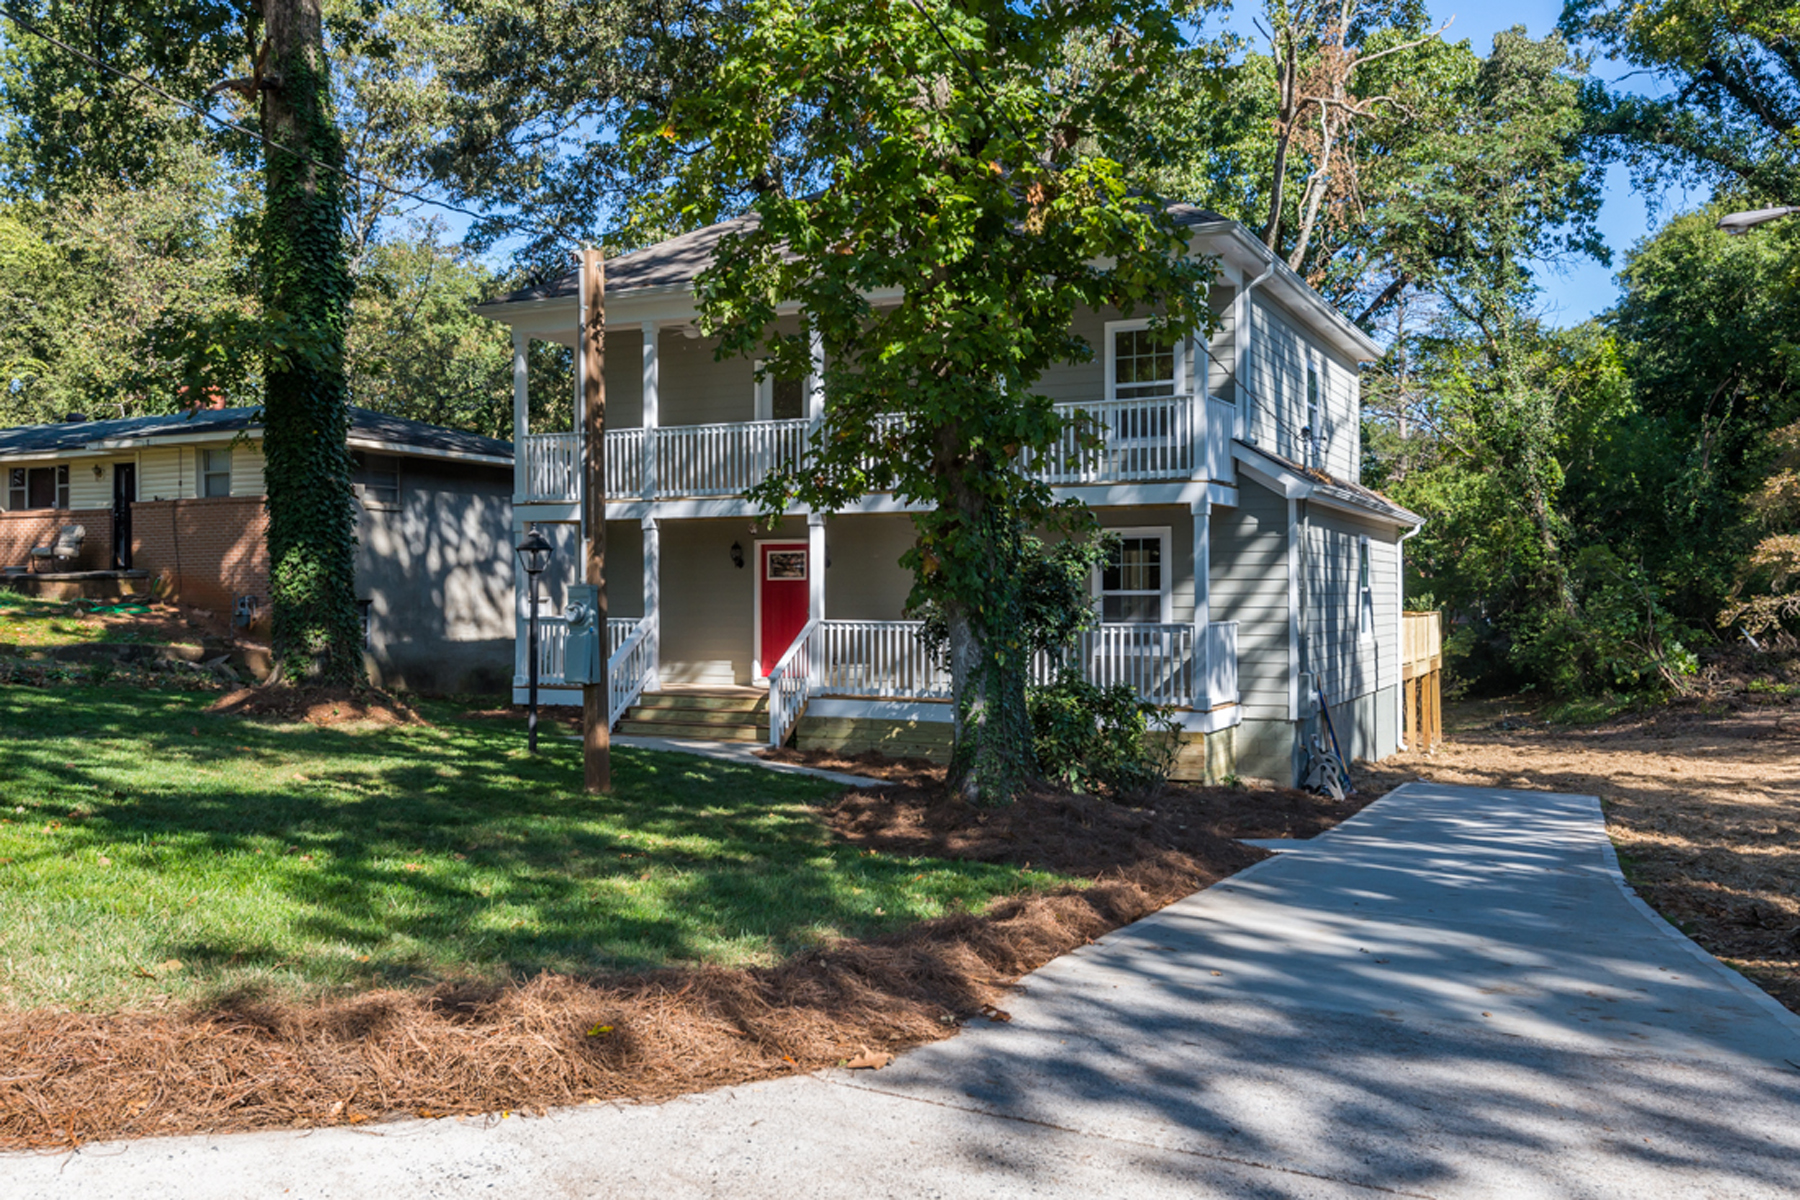 Single Family Home for Sale at Renovated Charmer In Popular West Midtown Area 1871 Francis Ave Atlanta, Georgia 30318 United States